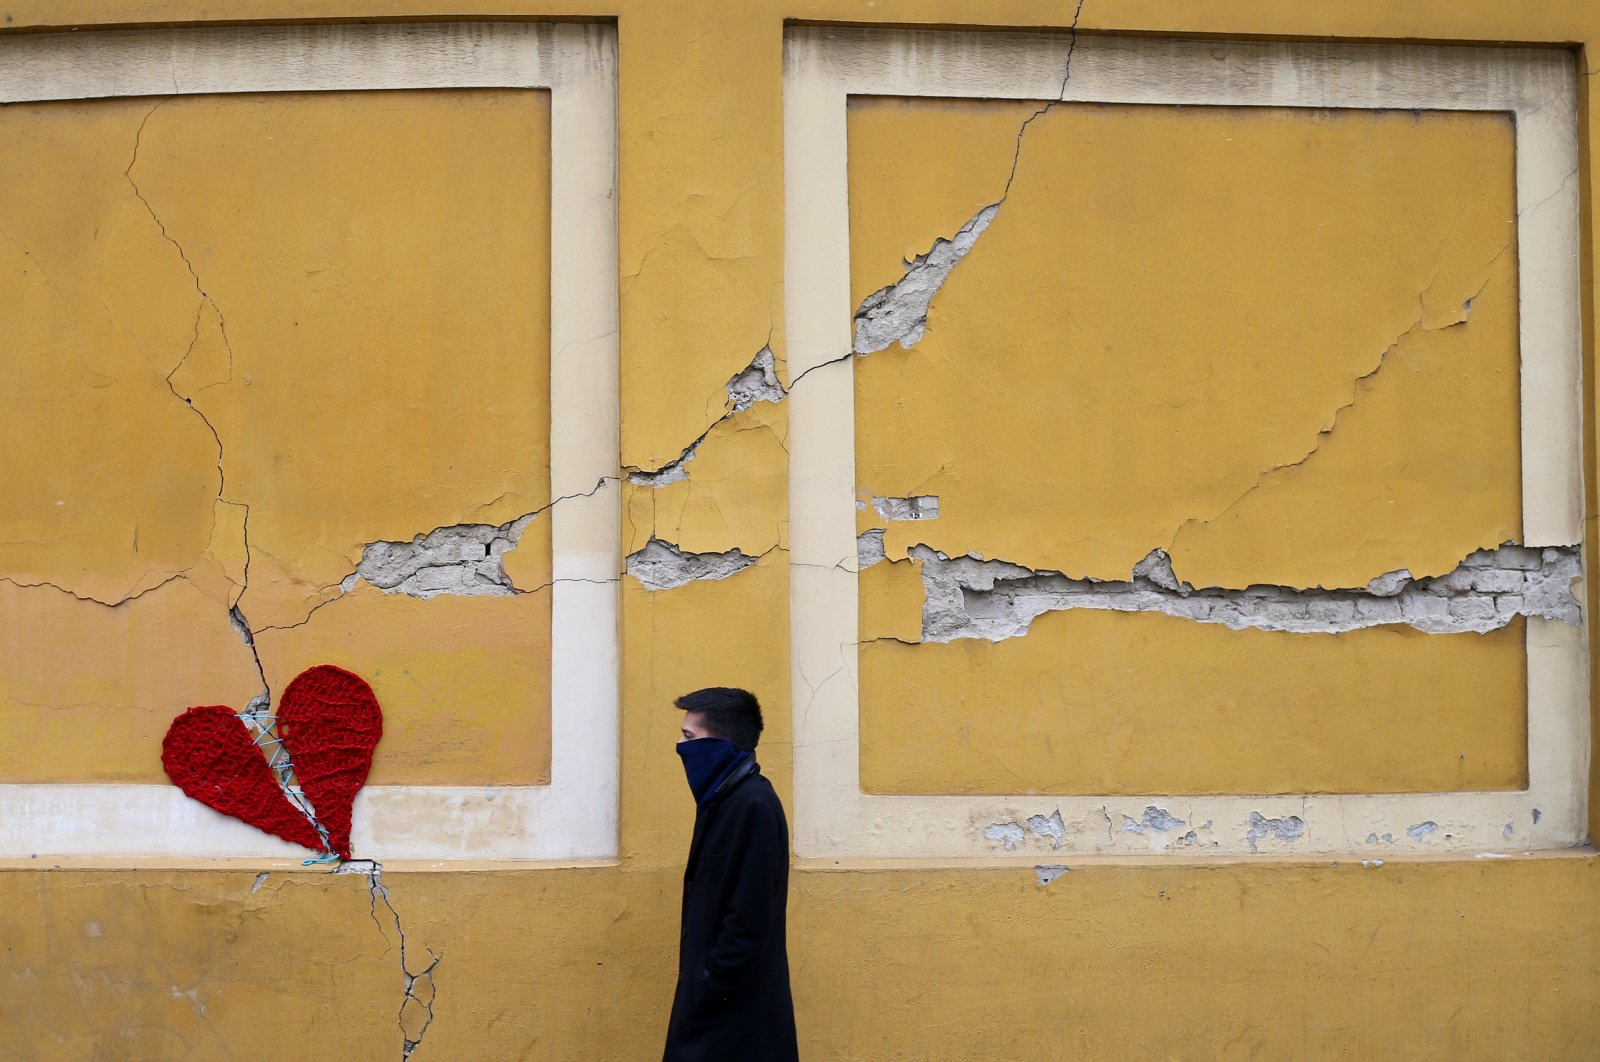 A man walks next to a repaired broken heart made of wool by Croatian designer Ivona, put on a building in downtown Zagreb, Croatia, Tuesday, March 25, 2020. (REUTERS Photo)